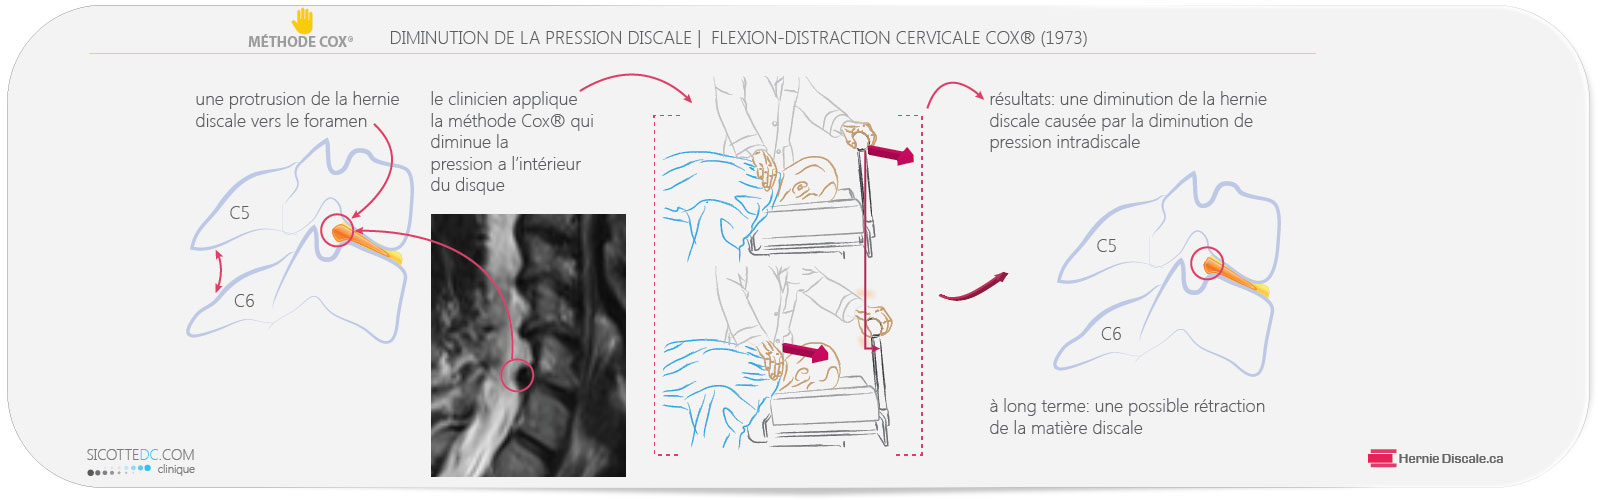 La diminution de la pression intradiscale de la hernie discale cervicale C5-C6 avec l'application de la méthode Cox®